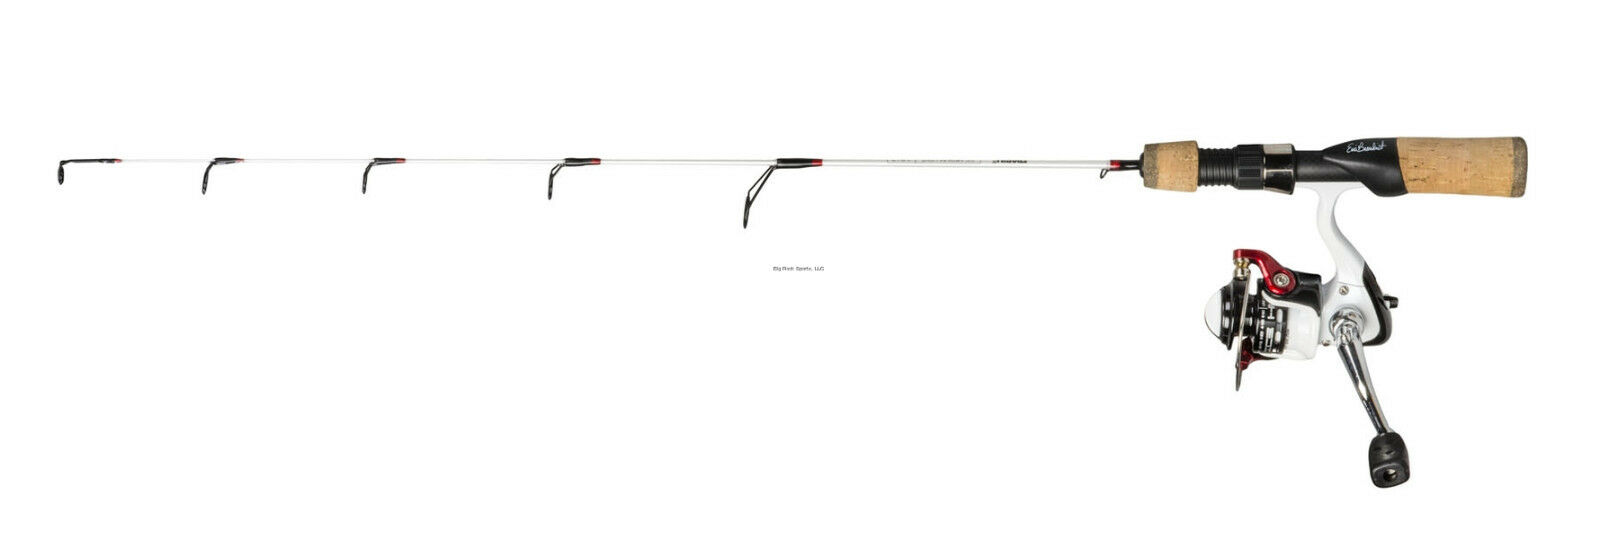 New Frabill Ice Hunter Pro Ice Fishing Combo 27 M 678007